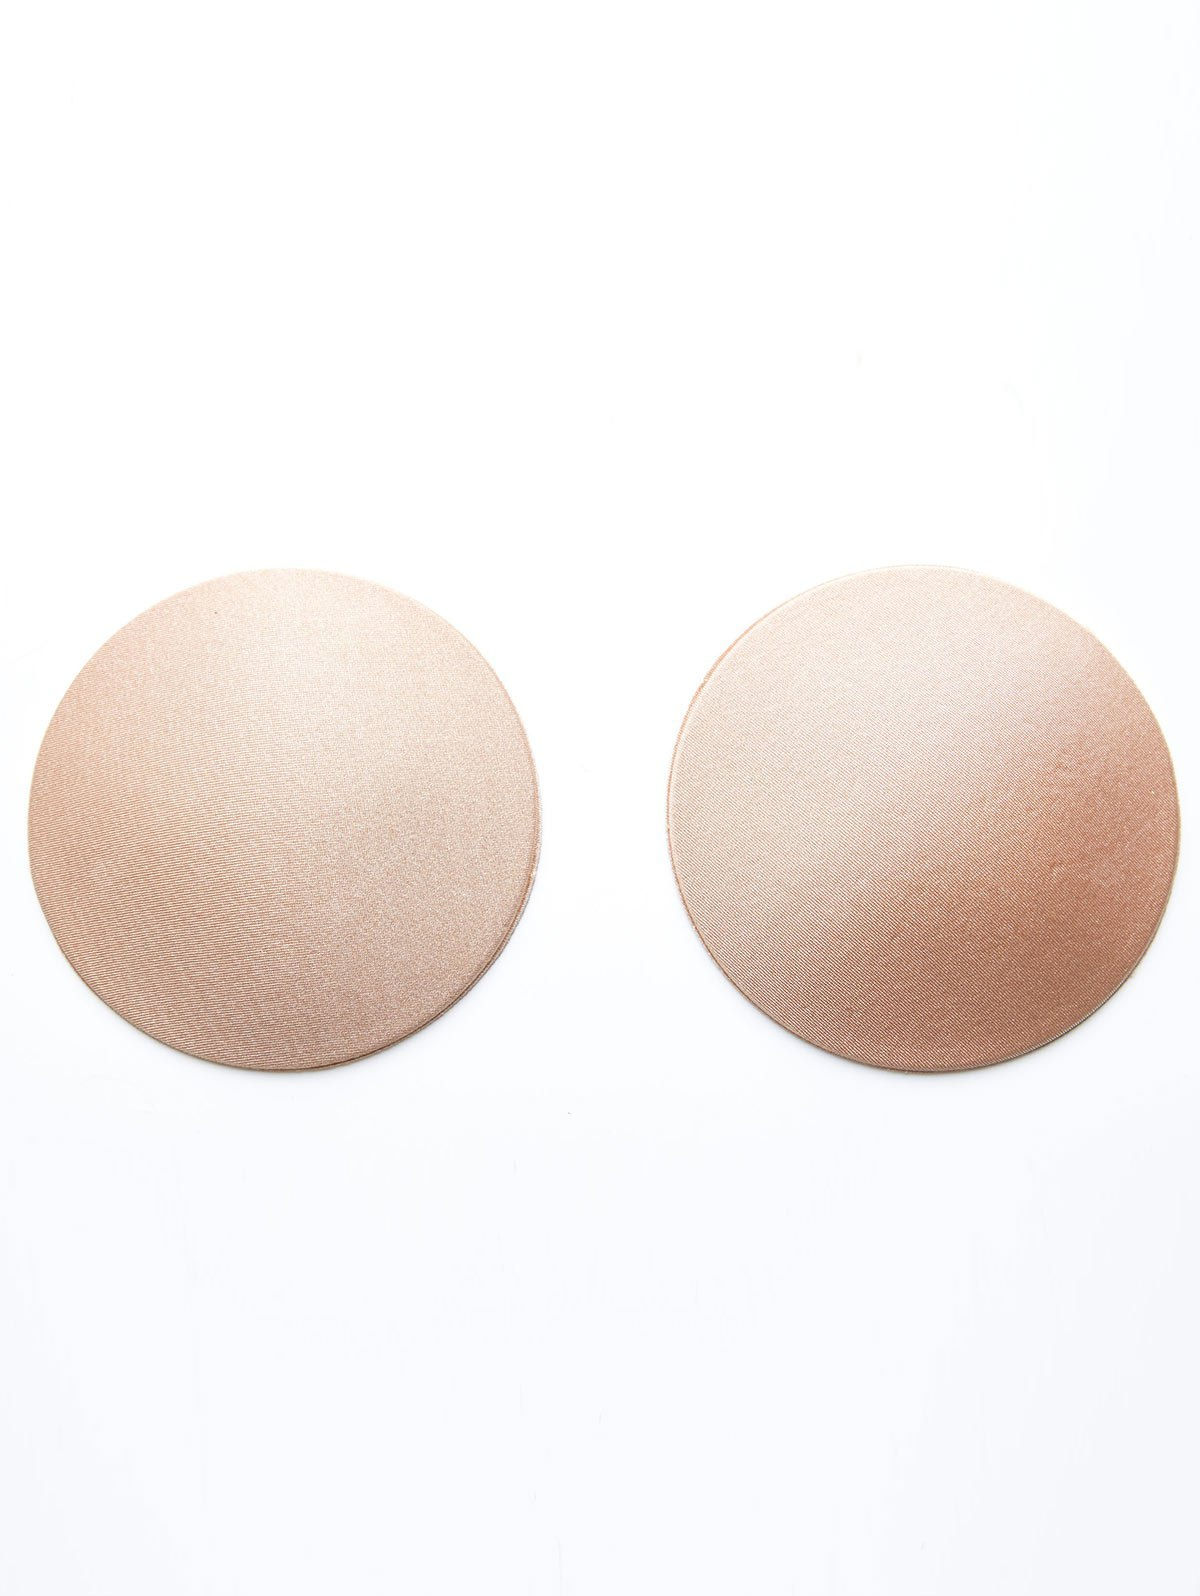 Round Shaped Silicone Breast Pasties